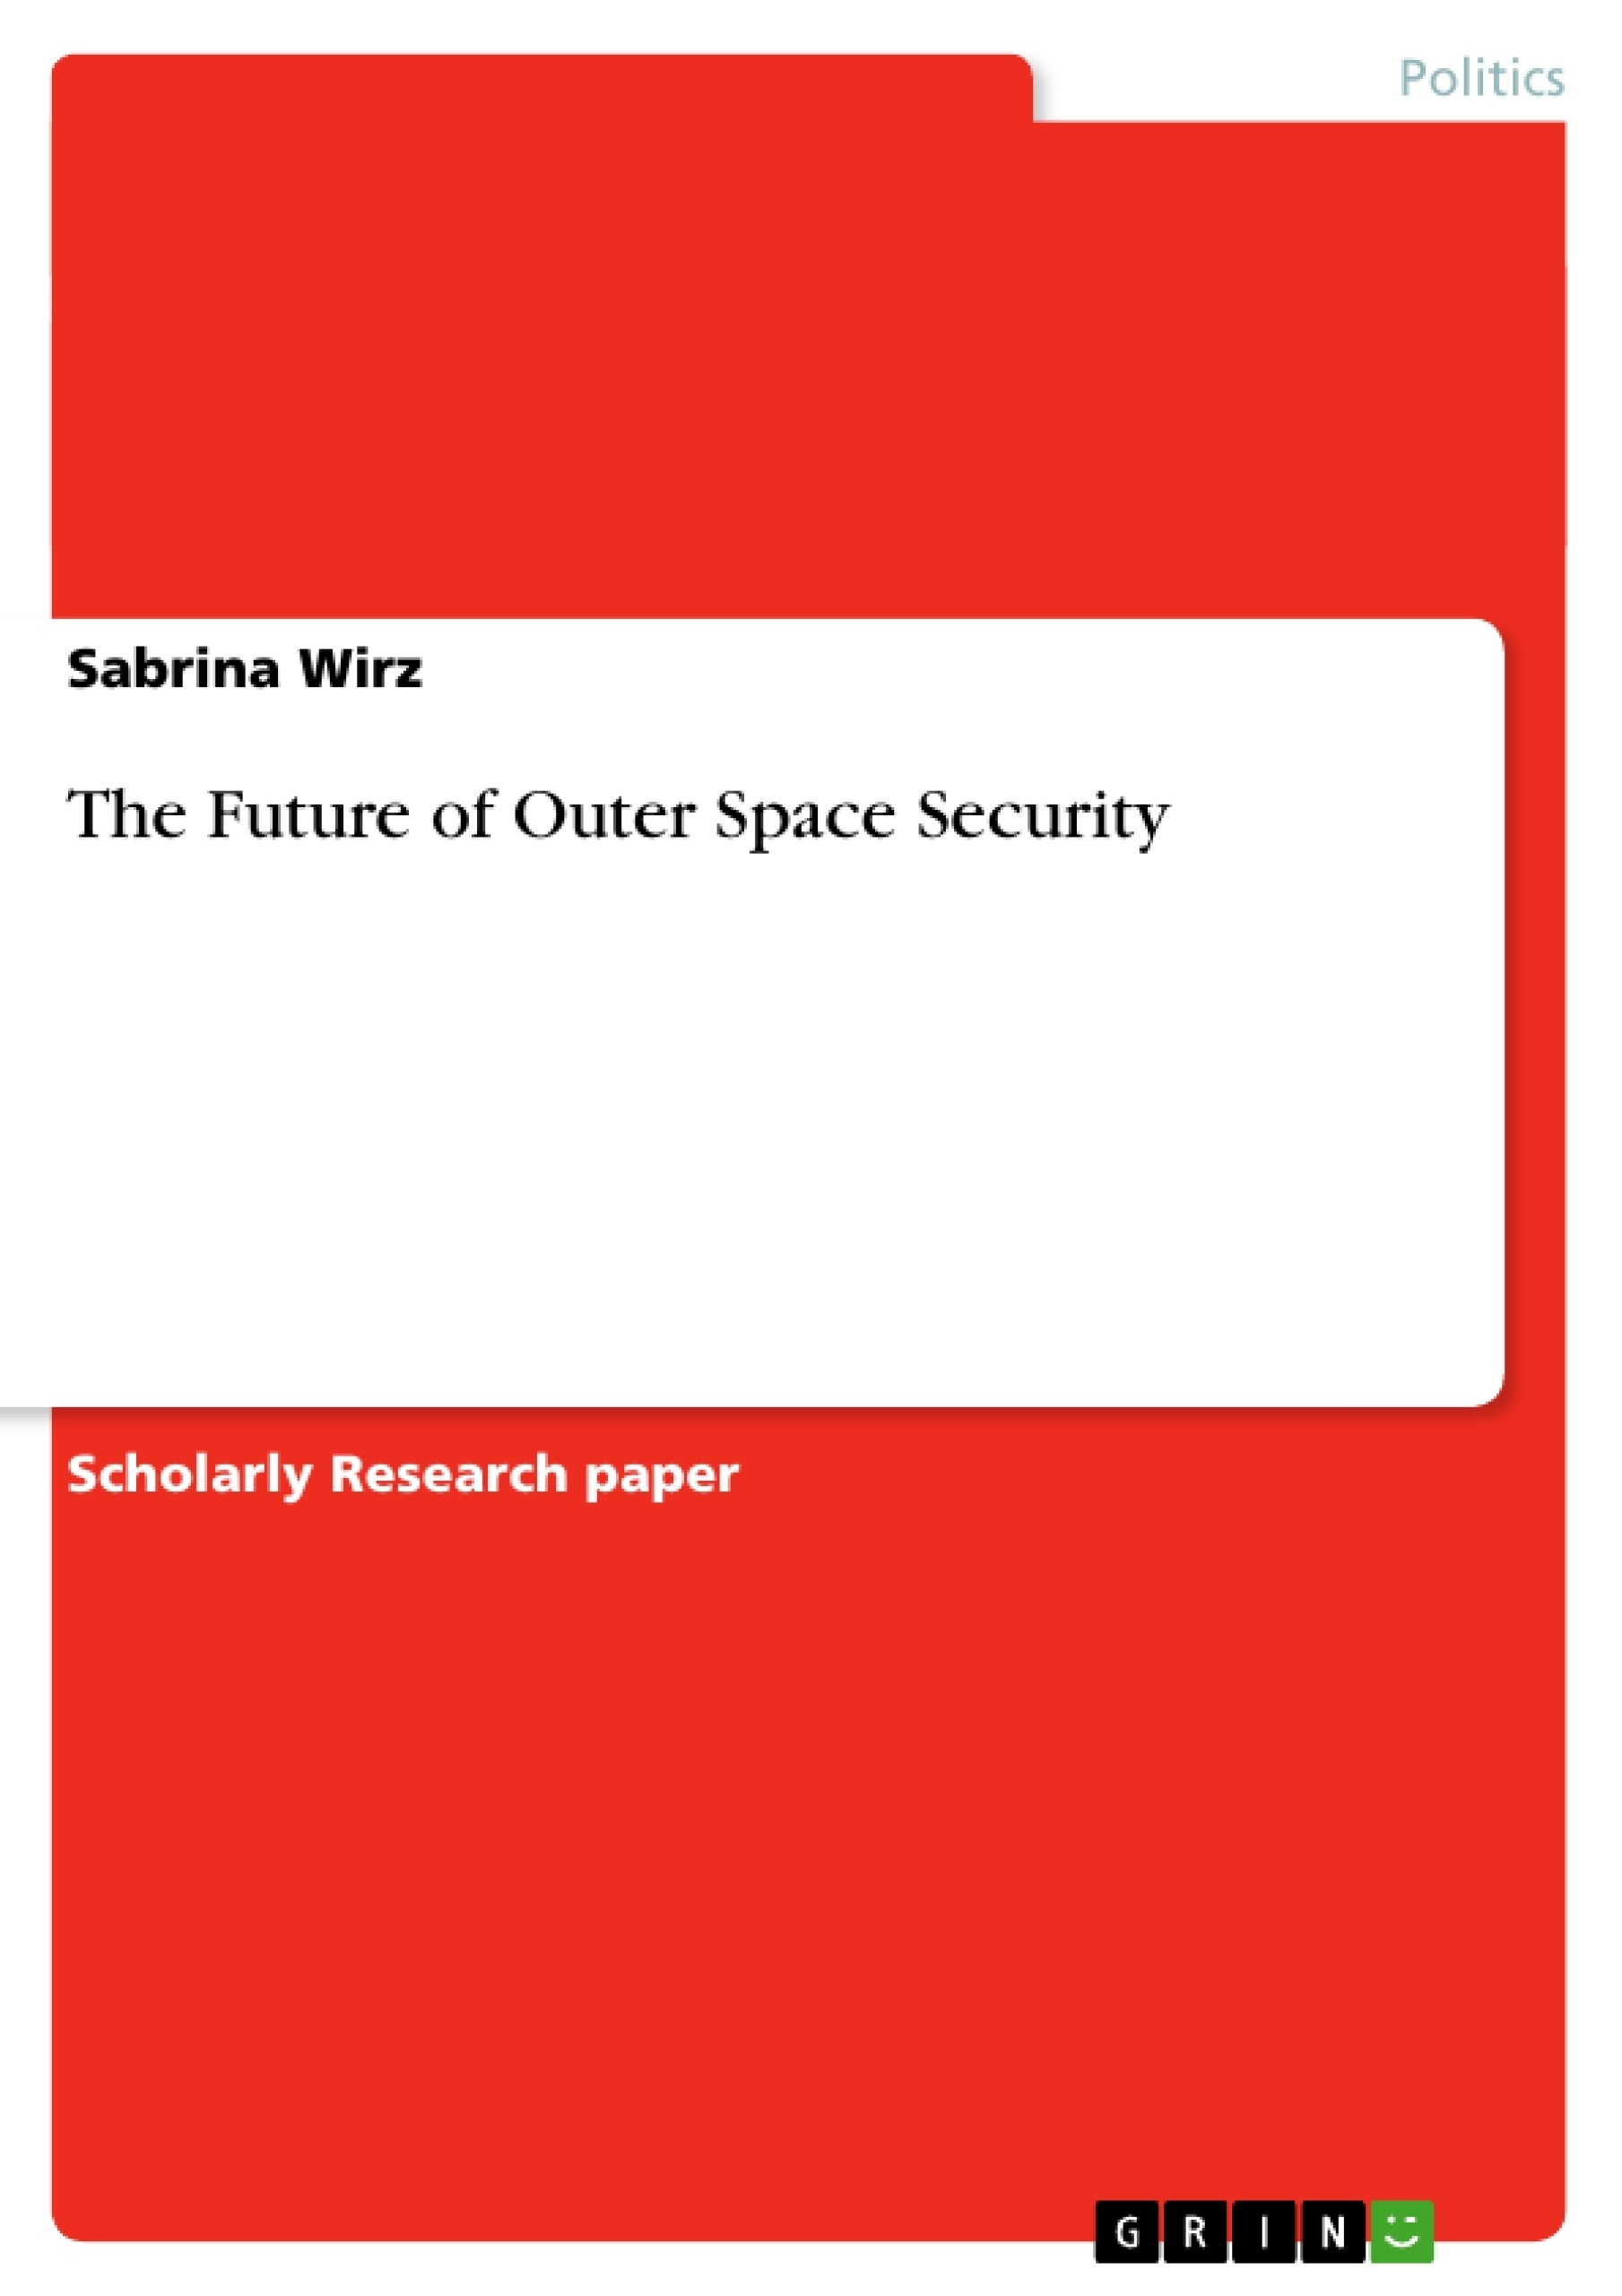 Title: The Future of Outer Space Security